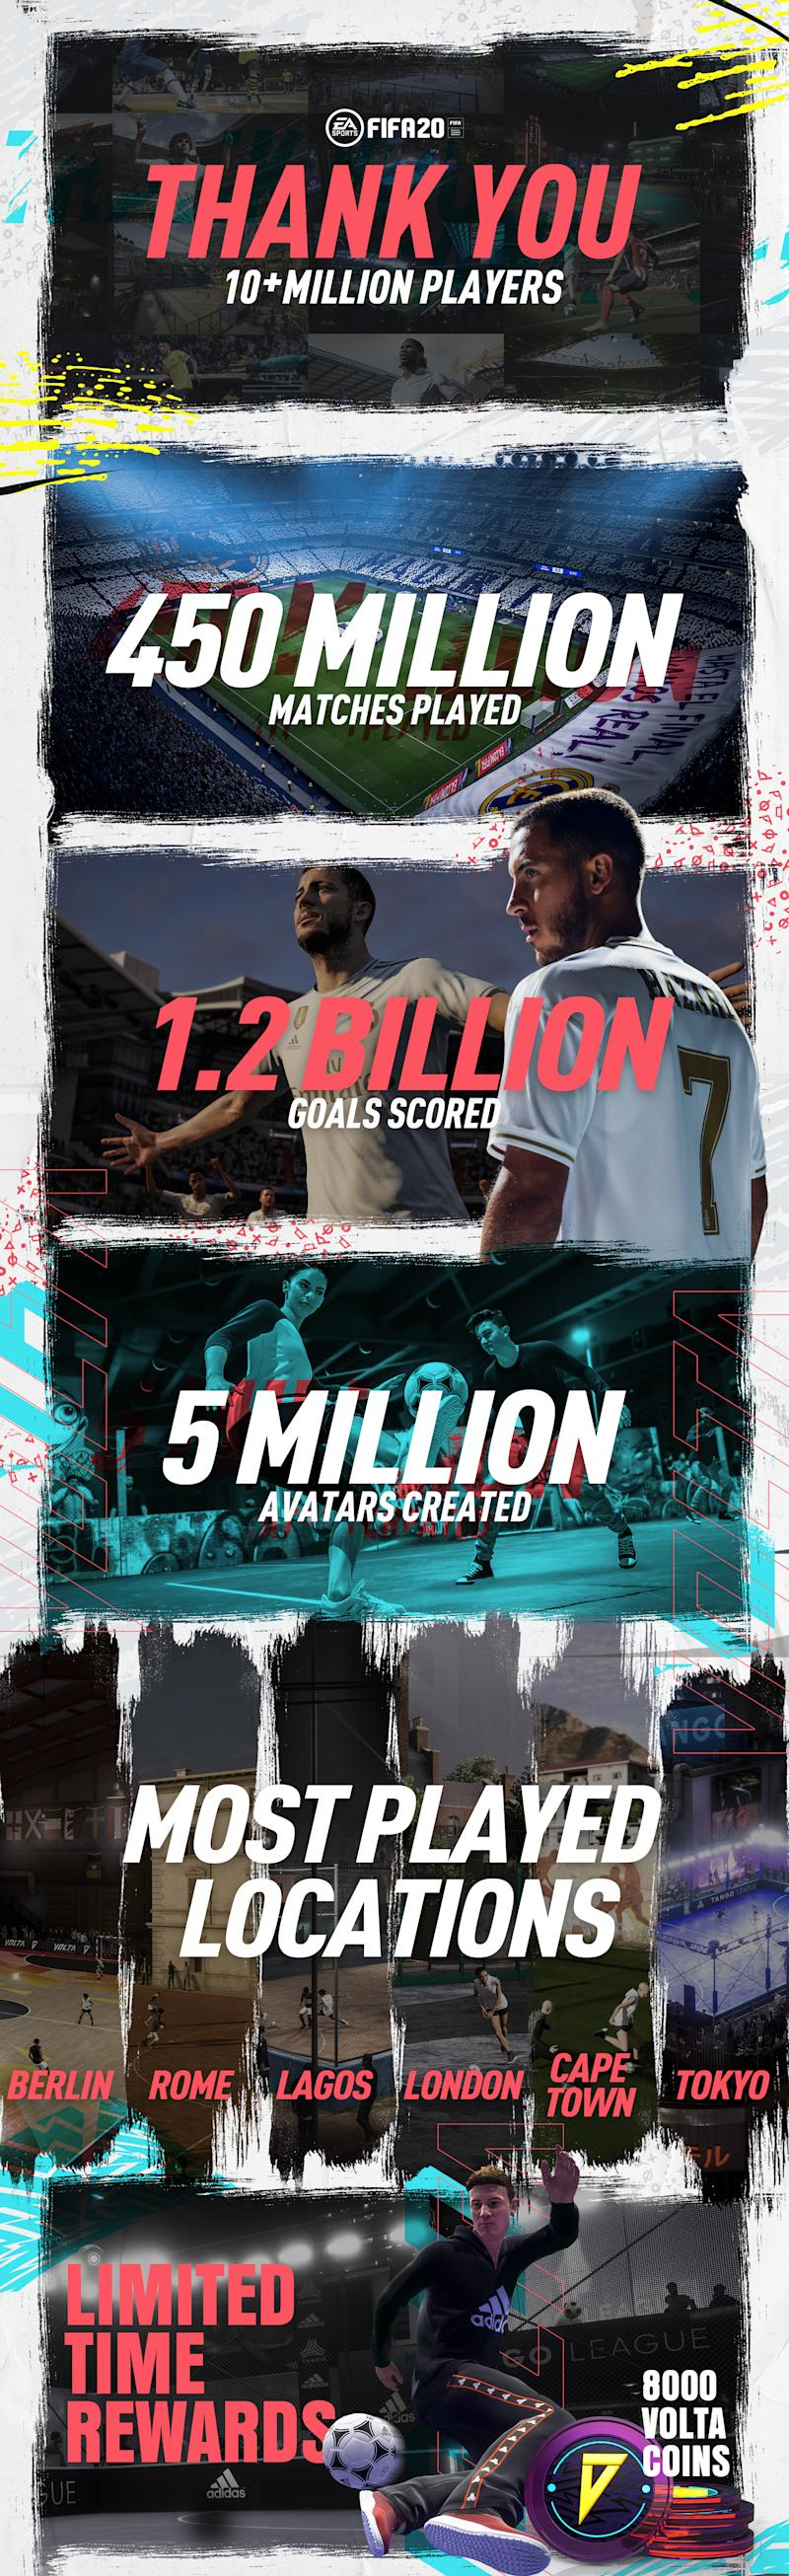 EA SPORTS FIFA 20 Celebrates 10 Million Players